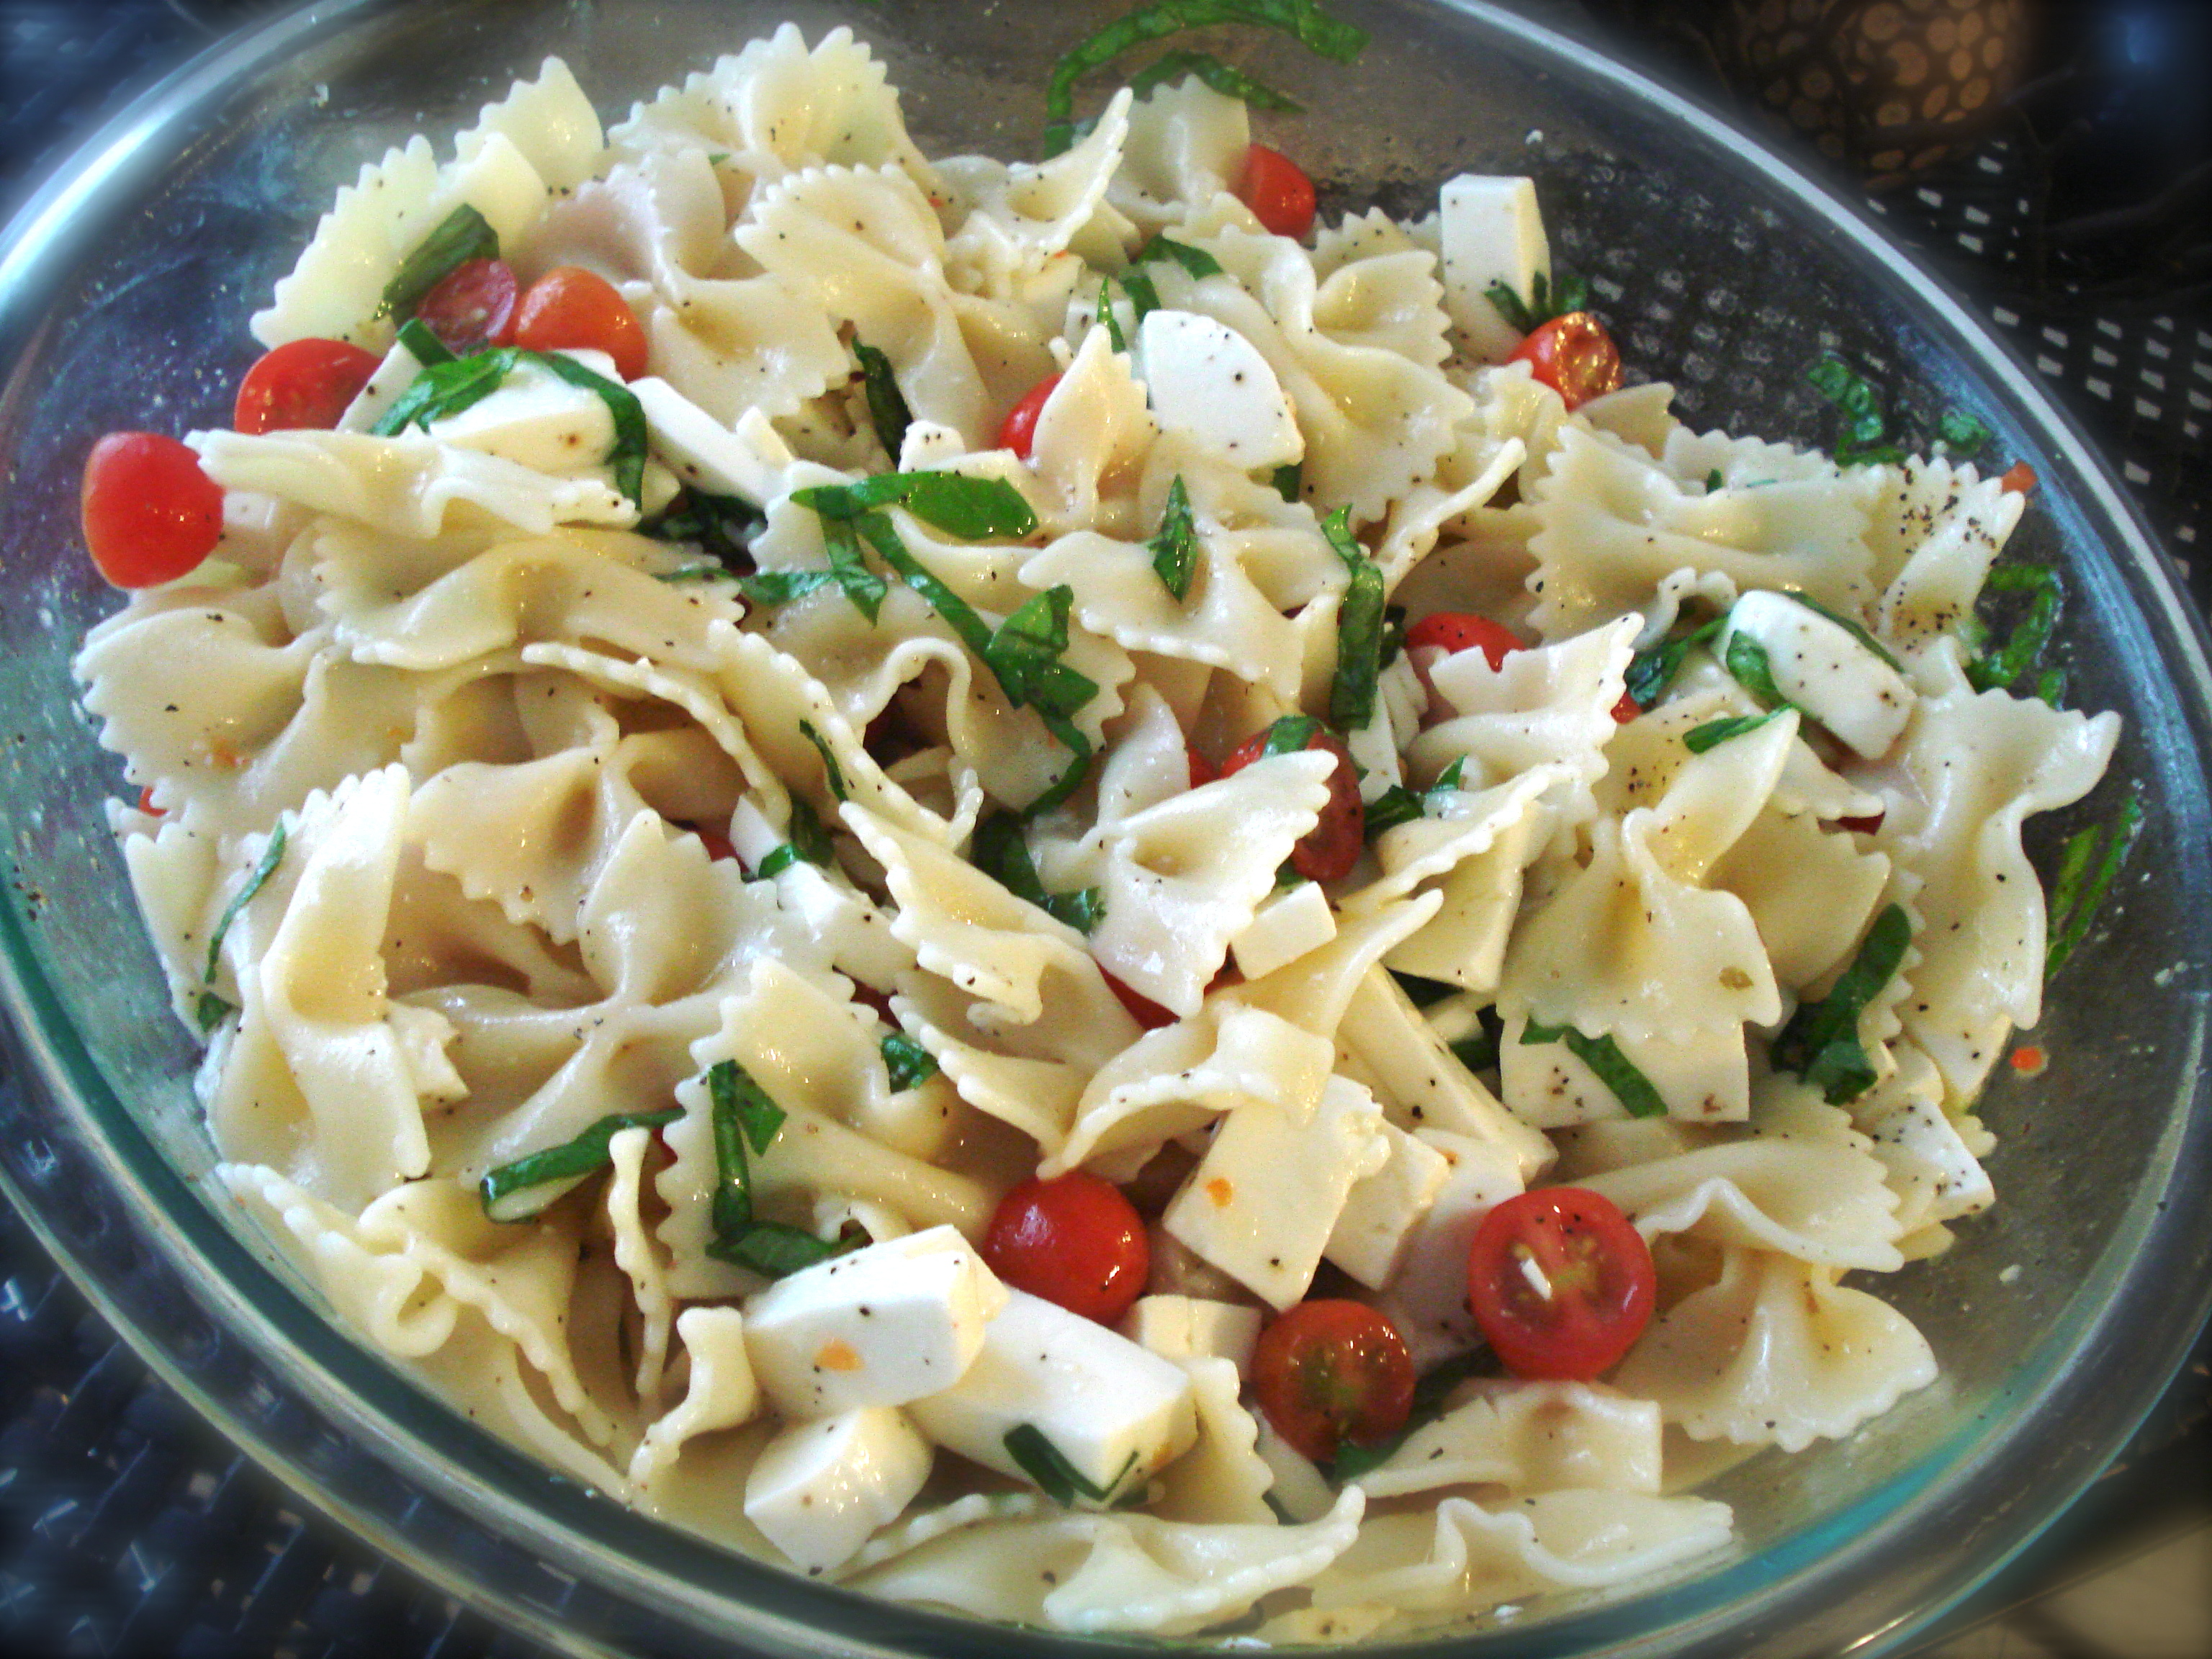 Pasta Salad Recipes Types Primavera Bake Fagioli Carbonara